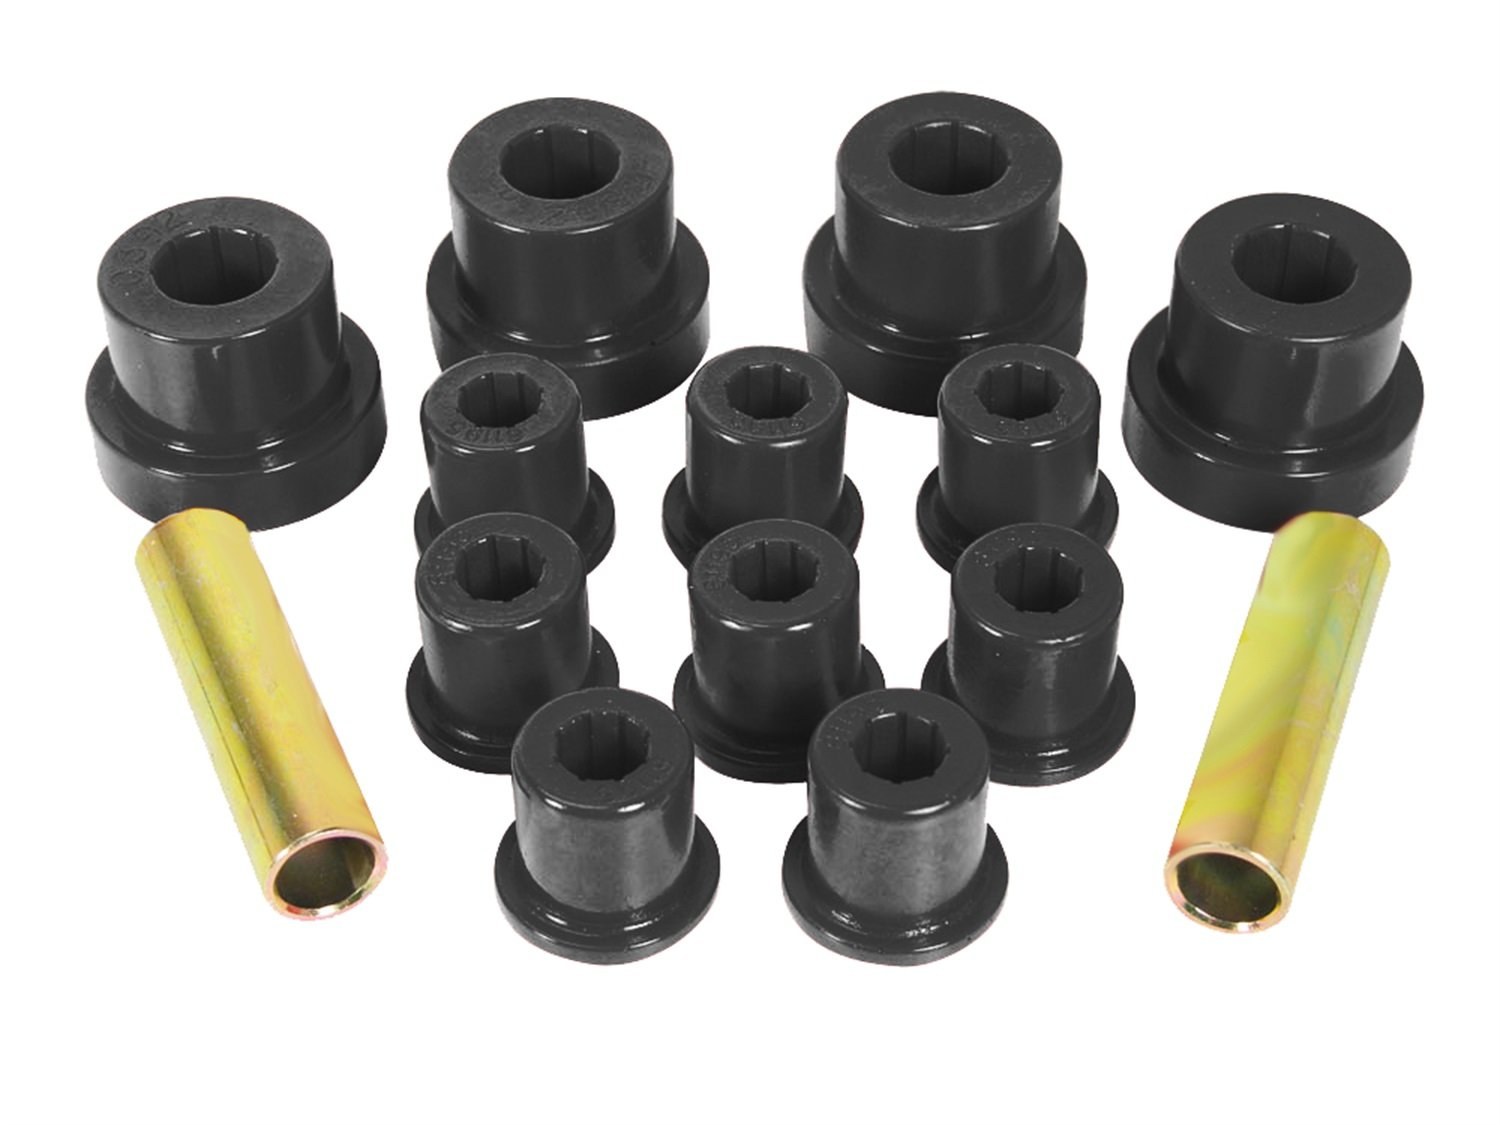 Prothane 1-1002-BL Black Front Spring Eye and Shackle Bushing Kit for Jeep CJ5 and CJ7 by Prothane